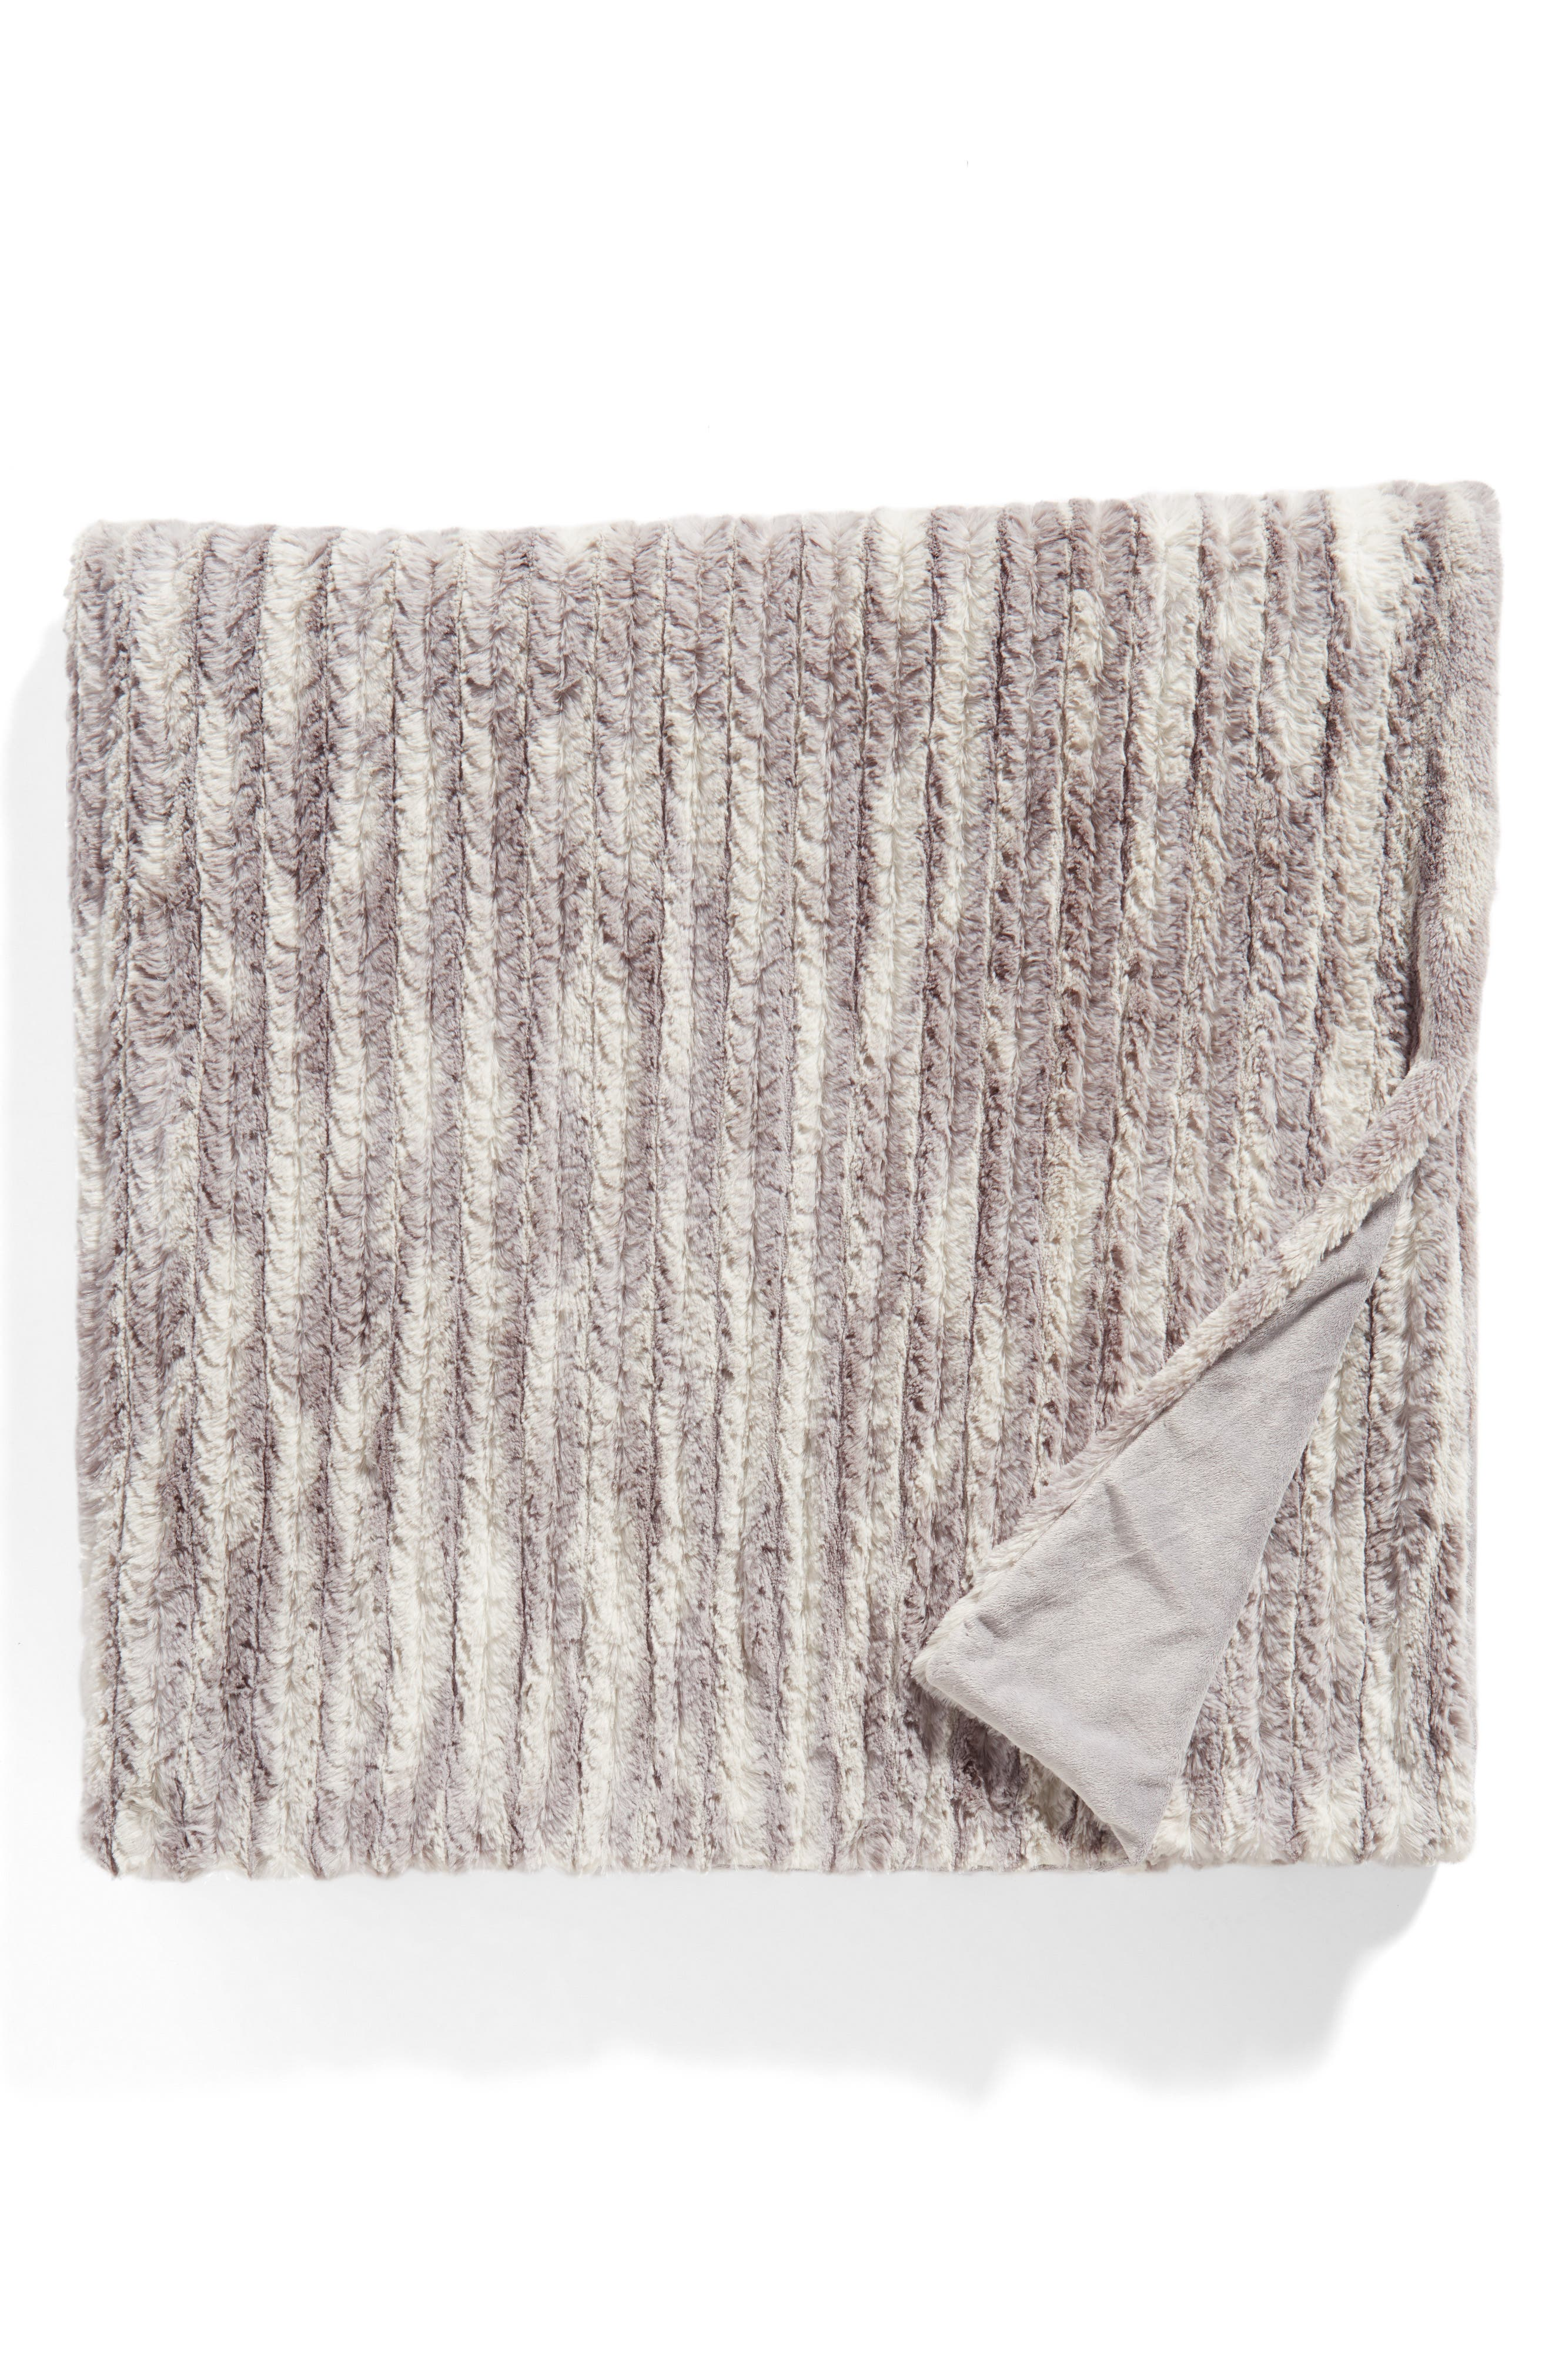 Main Image - Nordstrom Cozy Plush Faux Fur Blanket